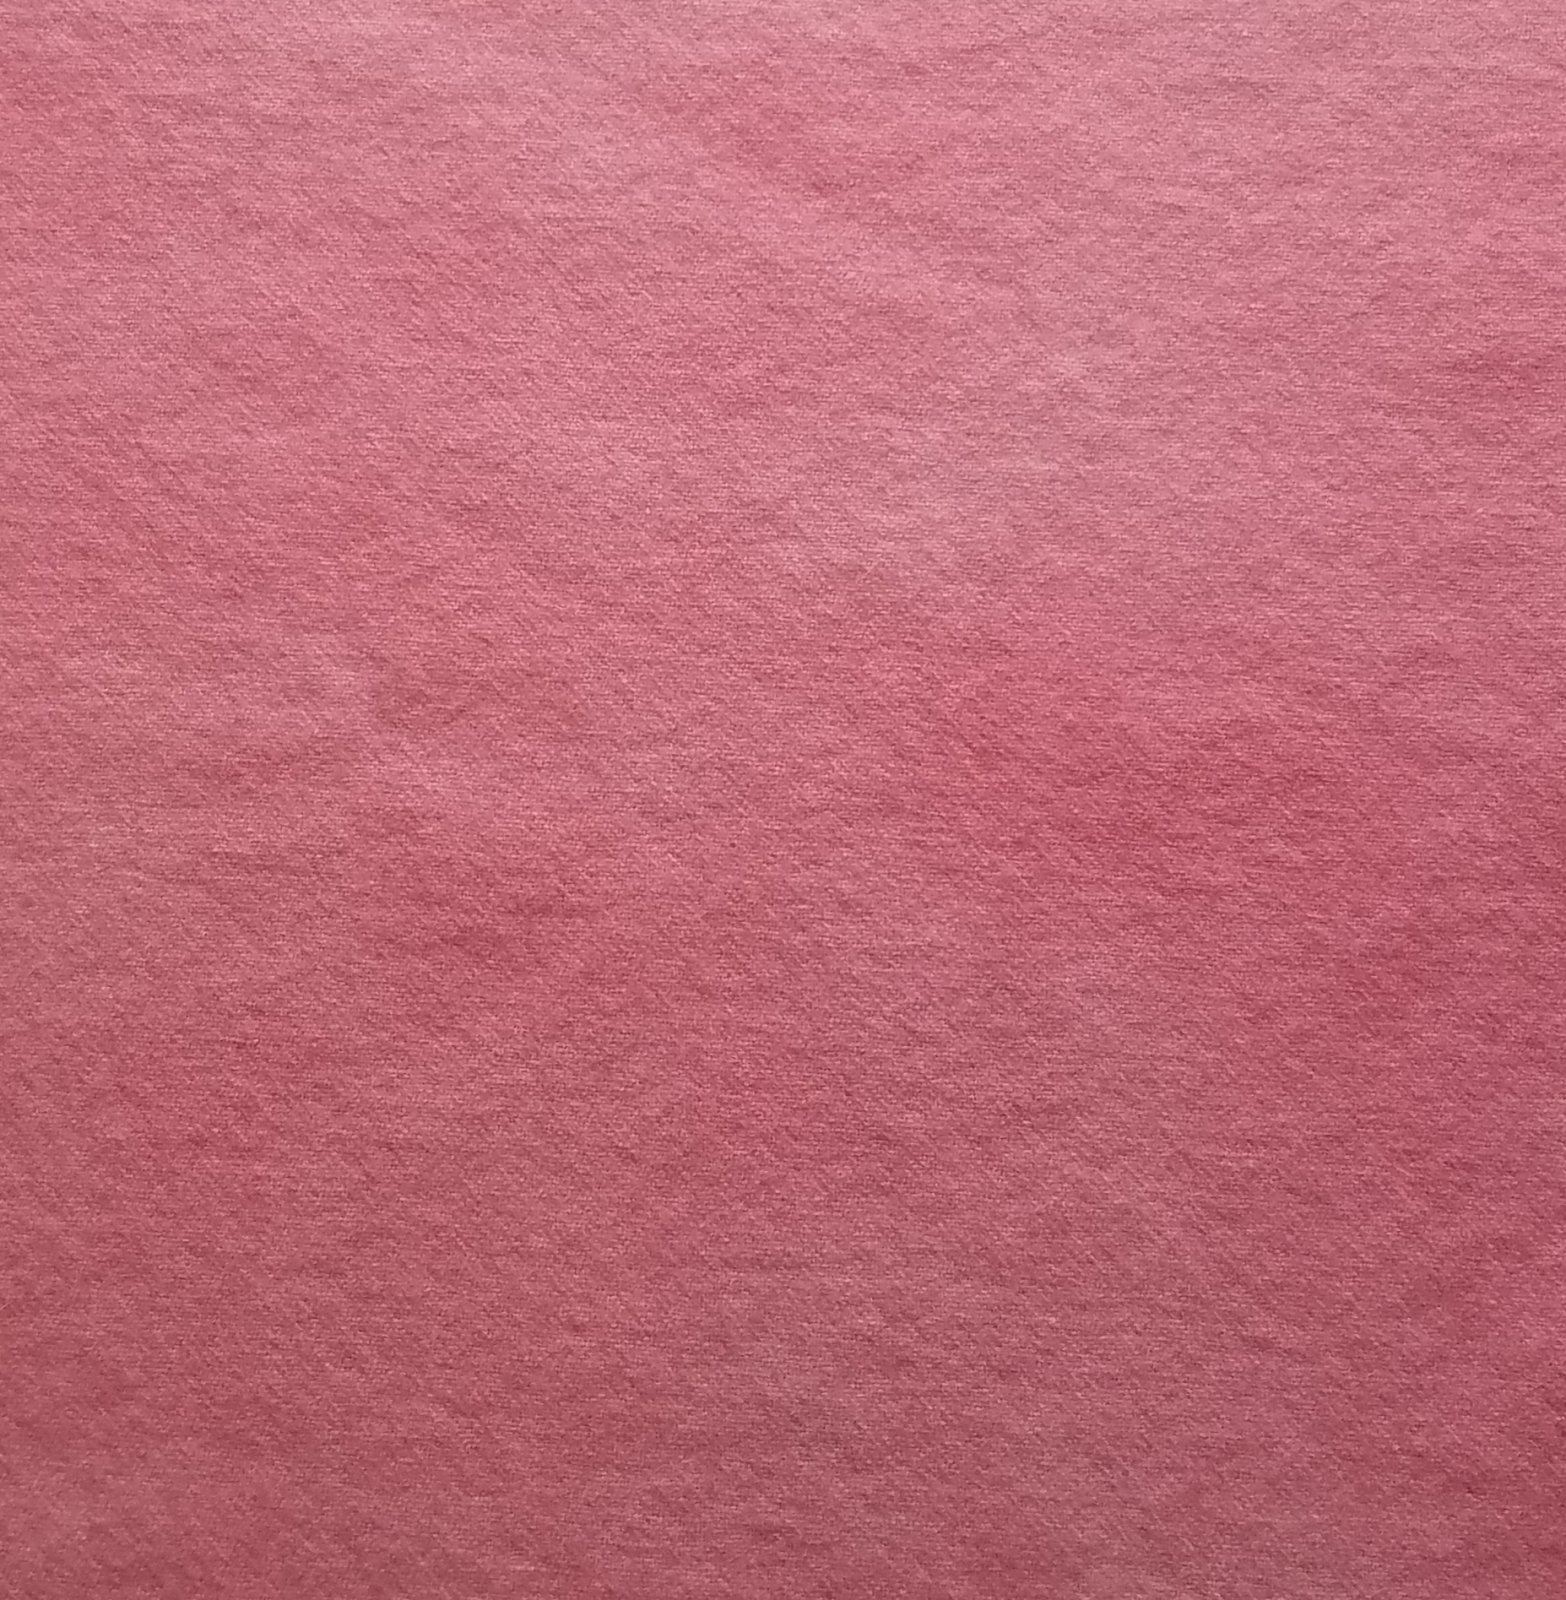 Creekside Hand-dyed Felted Wool Blush Pink